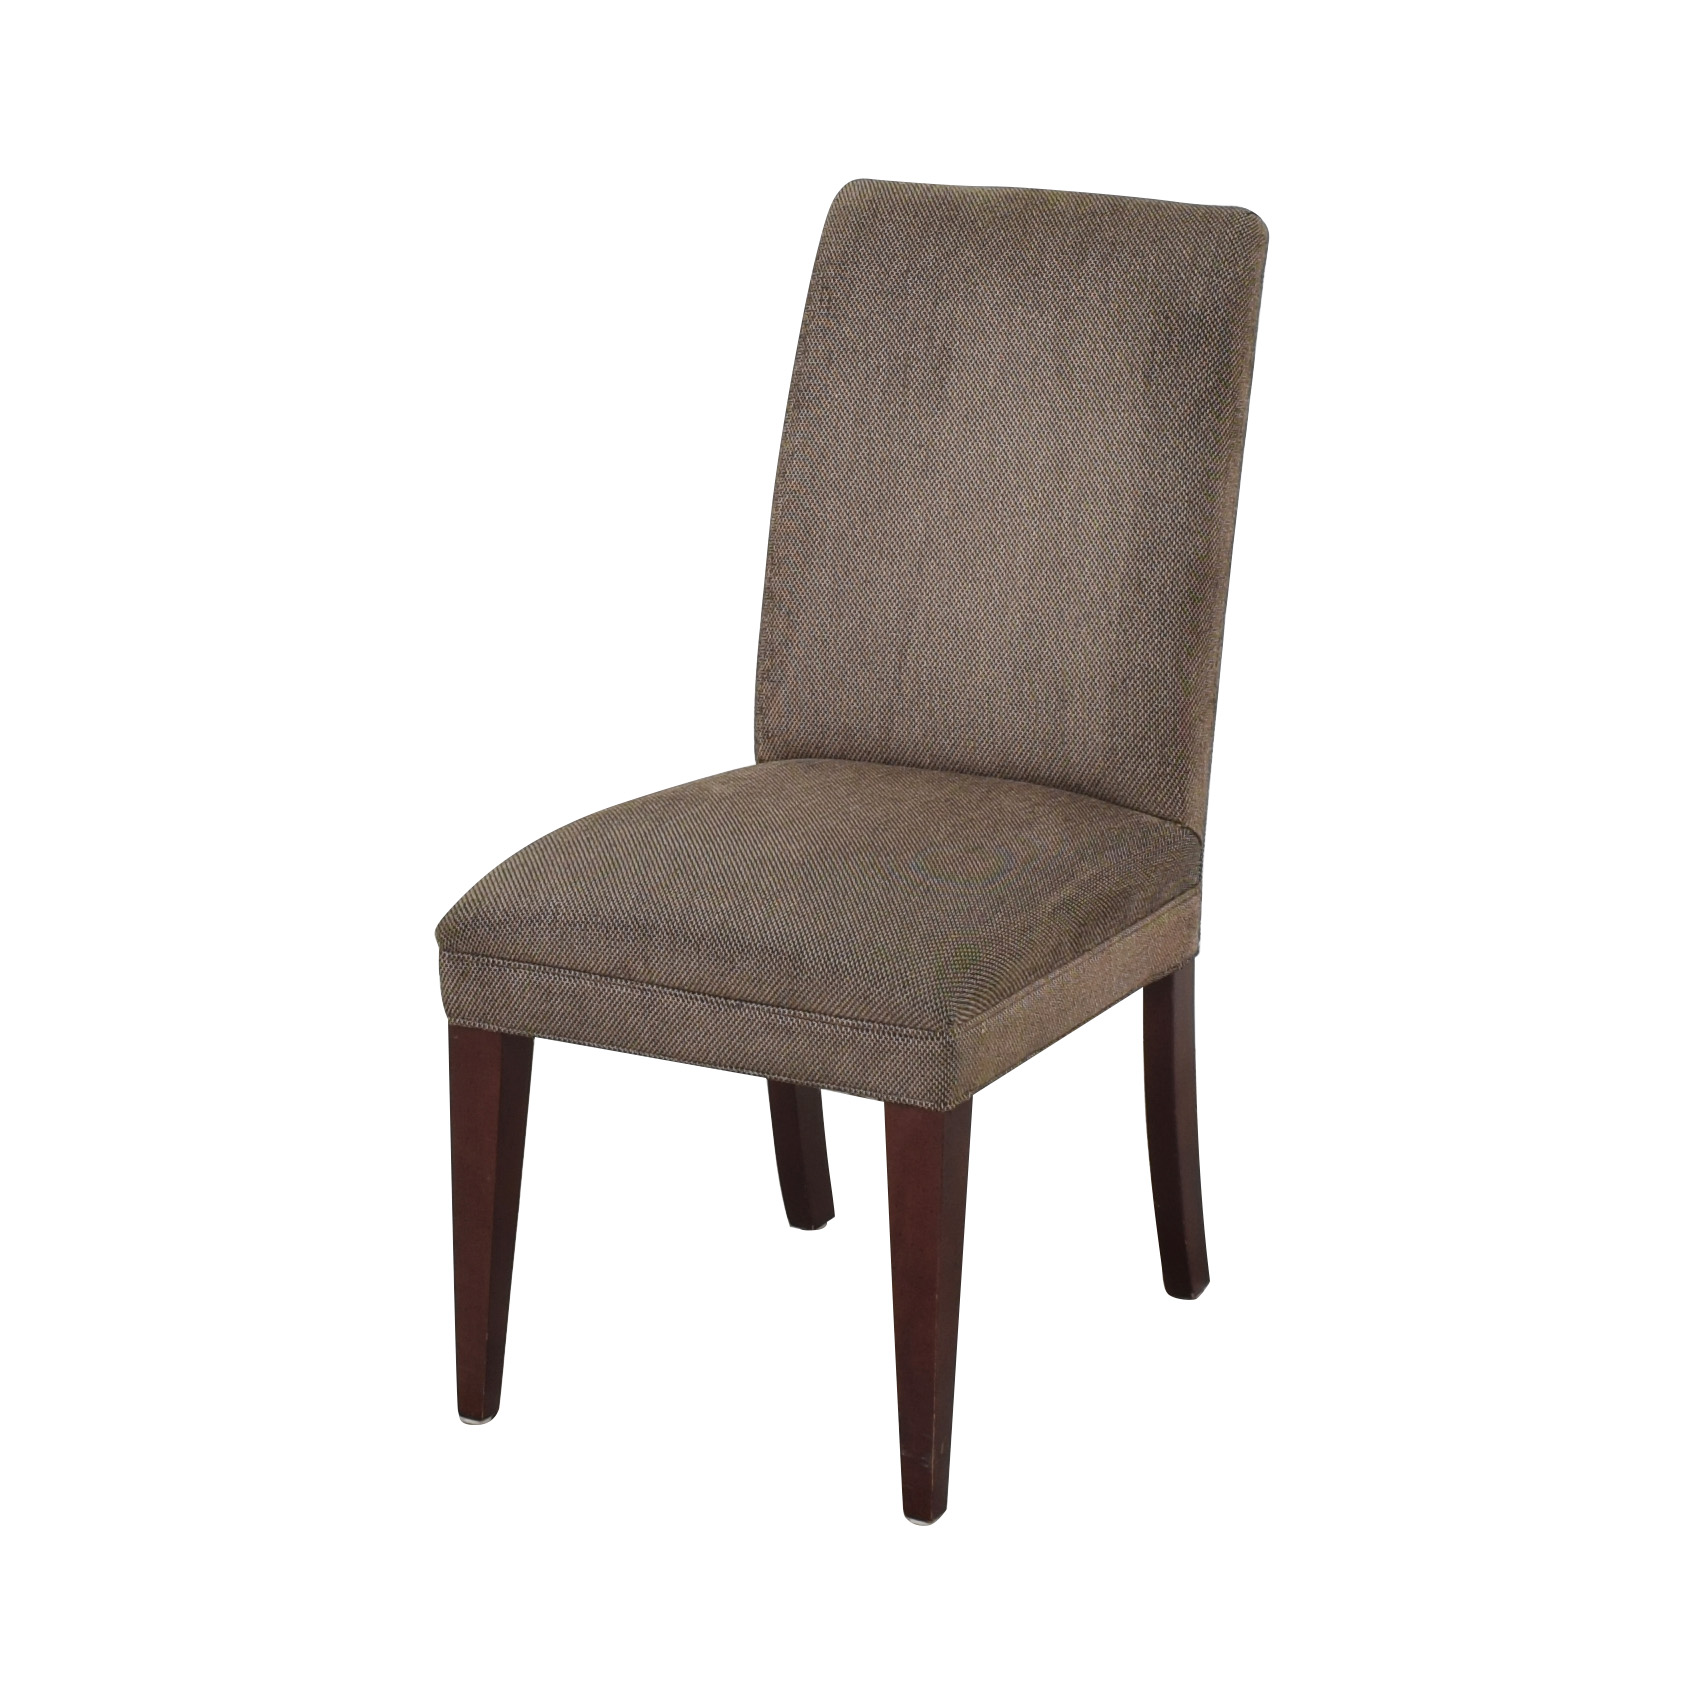 Restoration Hardware Grayson Dining Chairs / Chairs